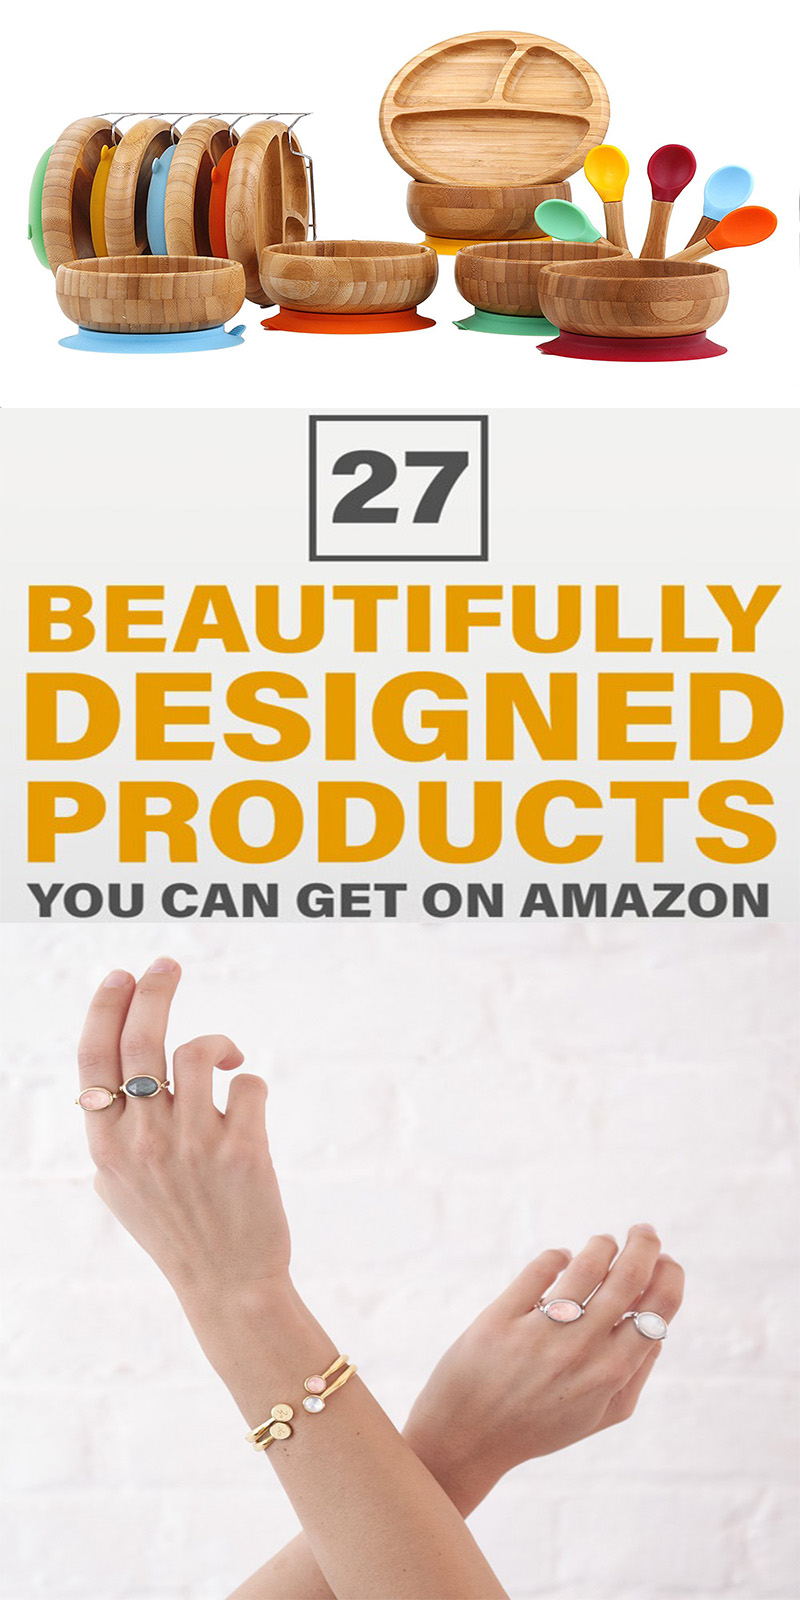 27 Beautifully Designed Products You Can Get On Amazon - 27 Beautifully Designed Products You Can Get On Amazon